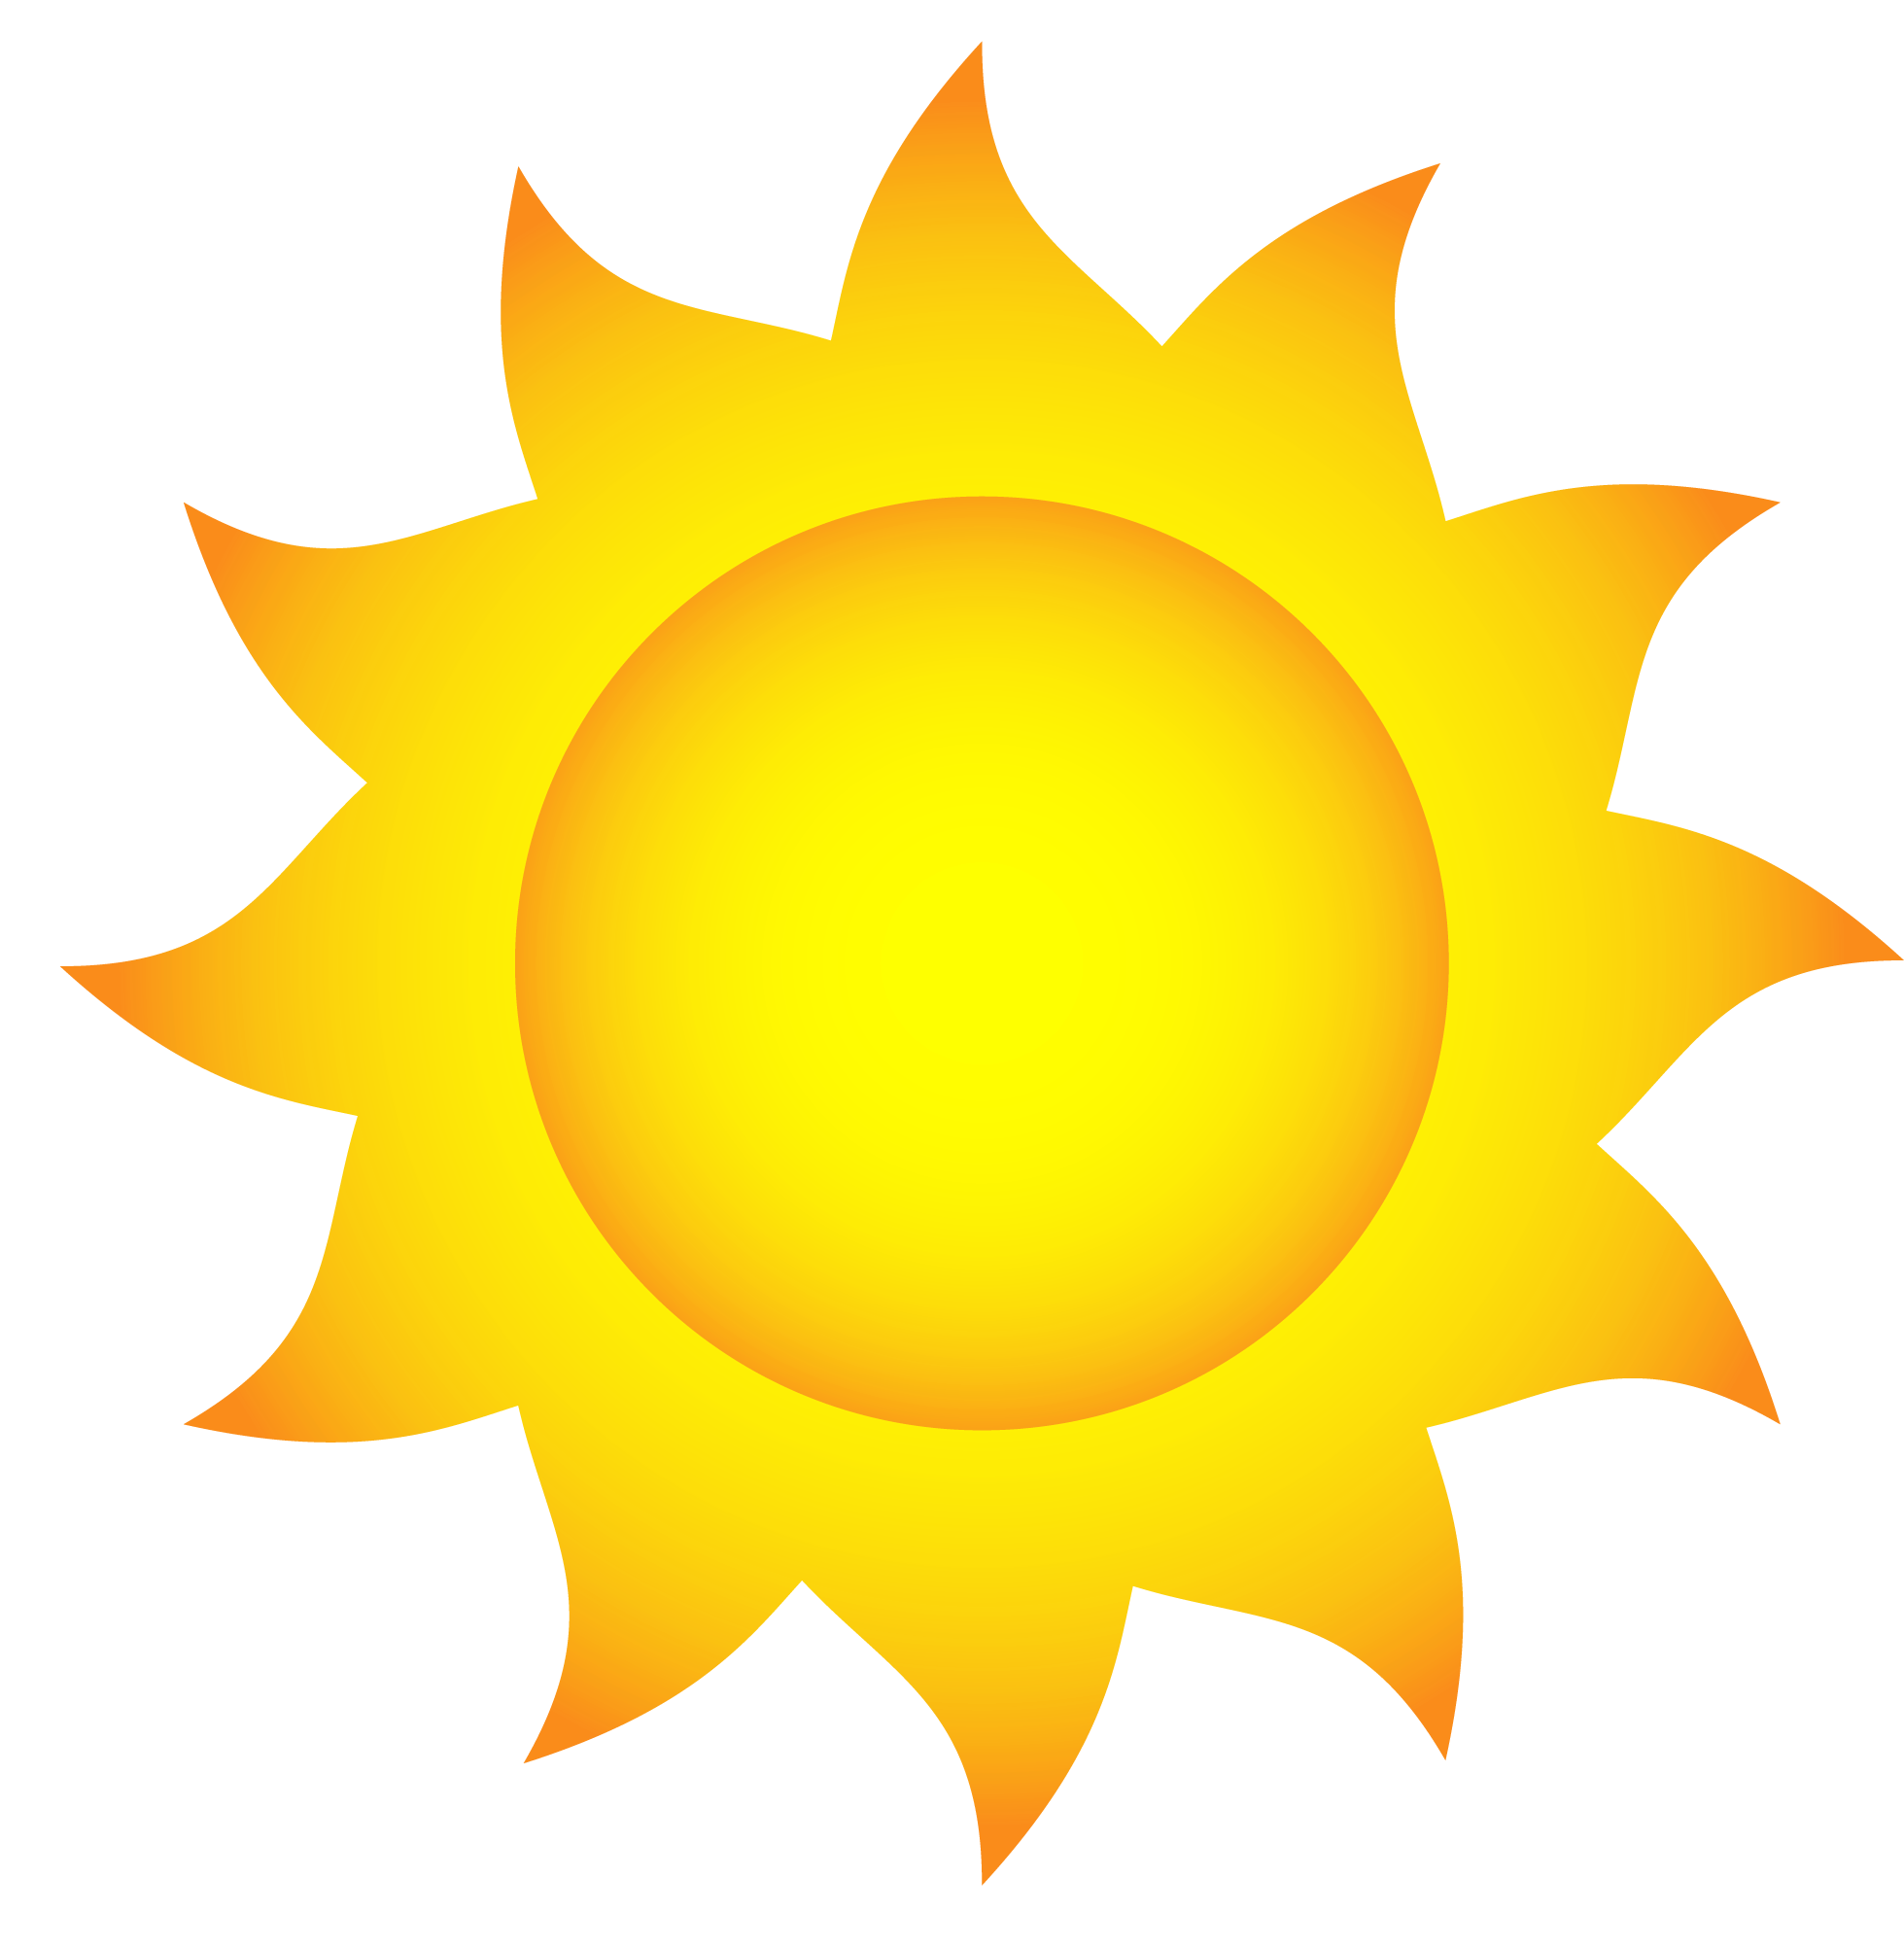 1959x2004 Sunshine Free Sun Clipart Public Domain Sun Clip Art Images And 6